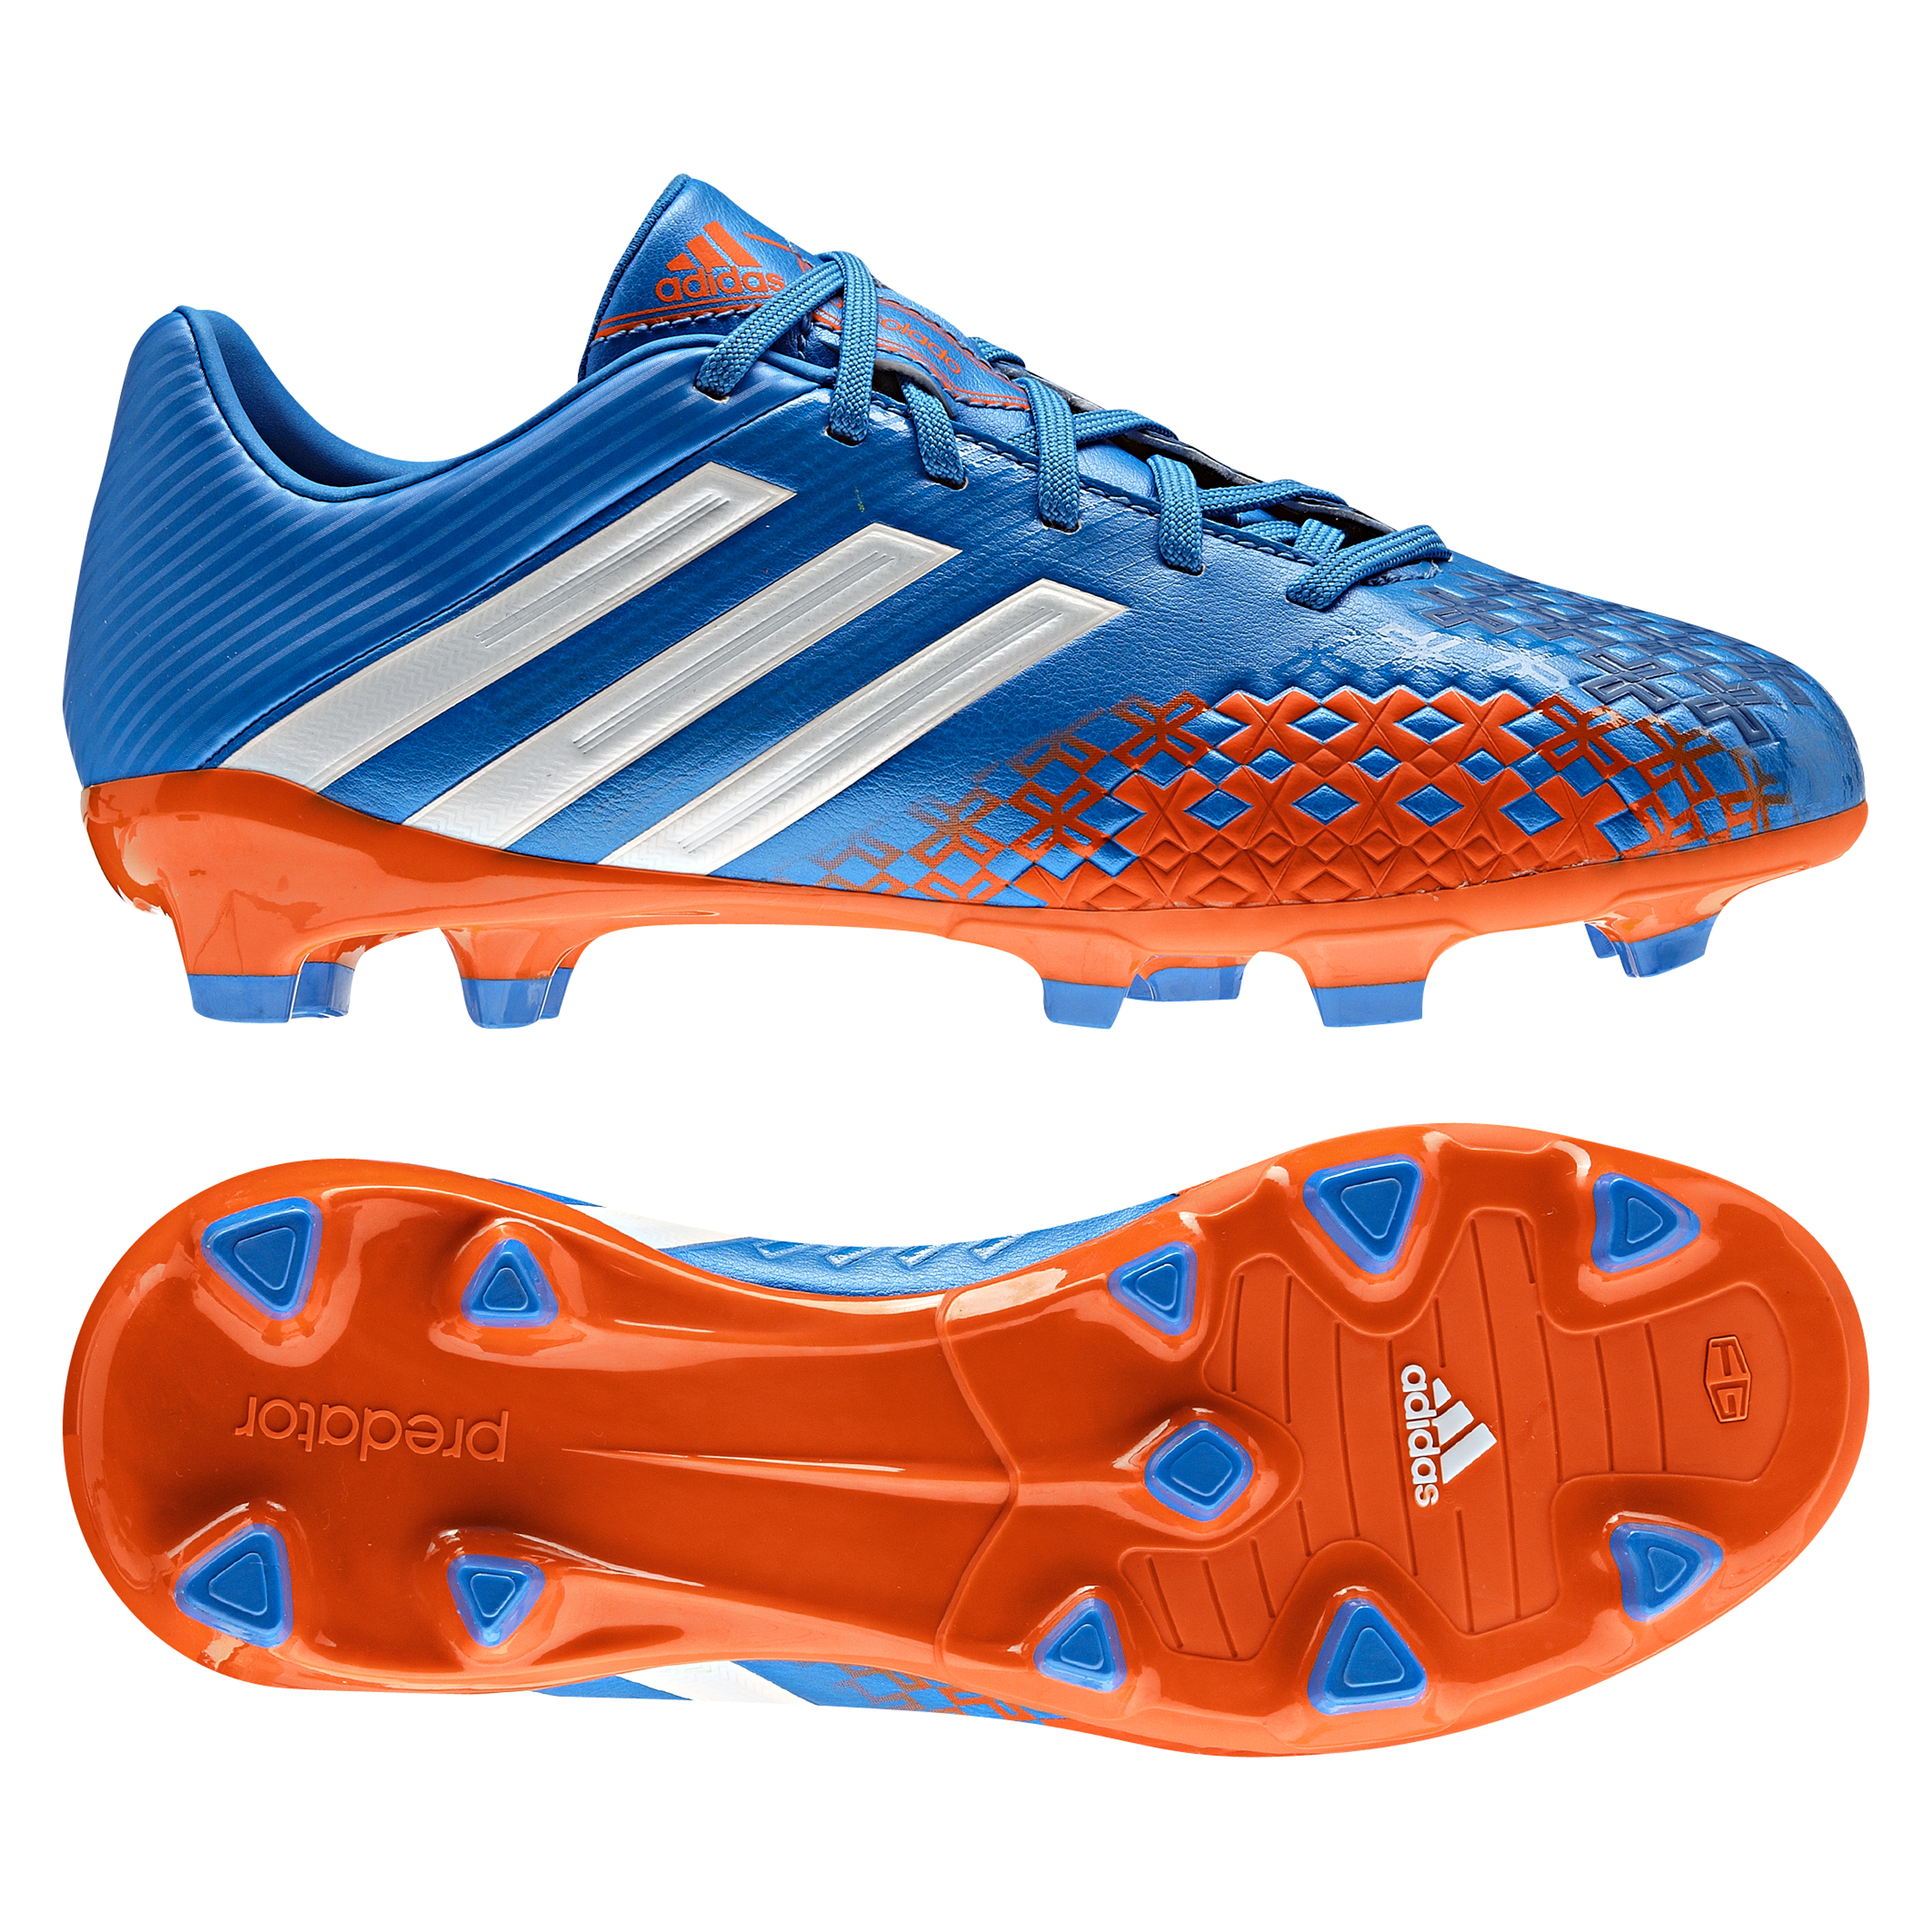 Adidas Predator Absolado LZ TRX Firm Ground Football Boots Blue